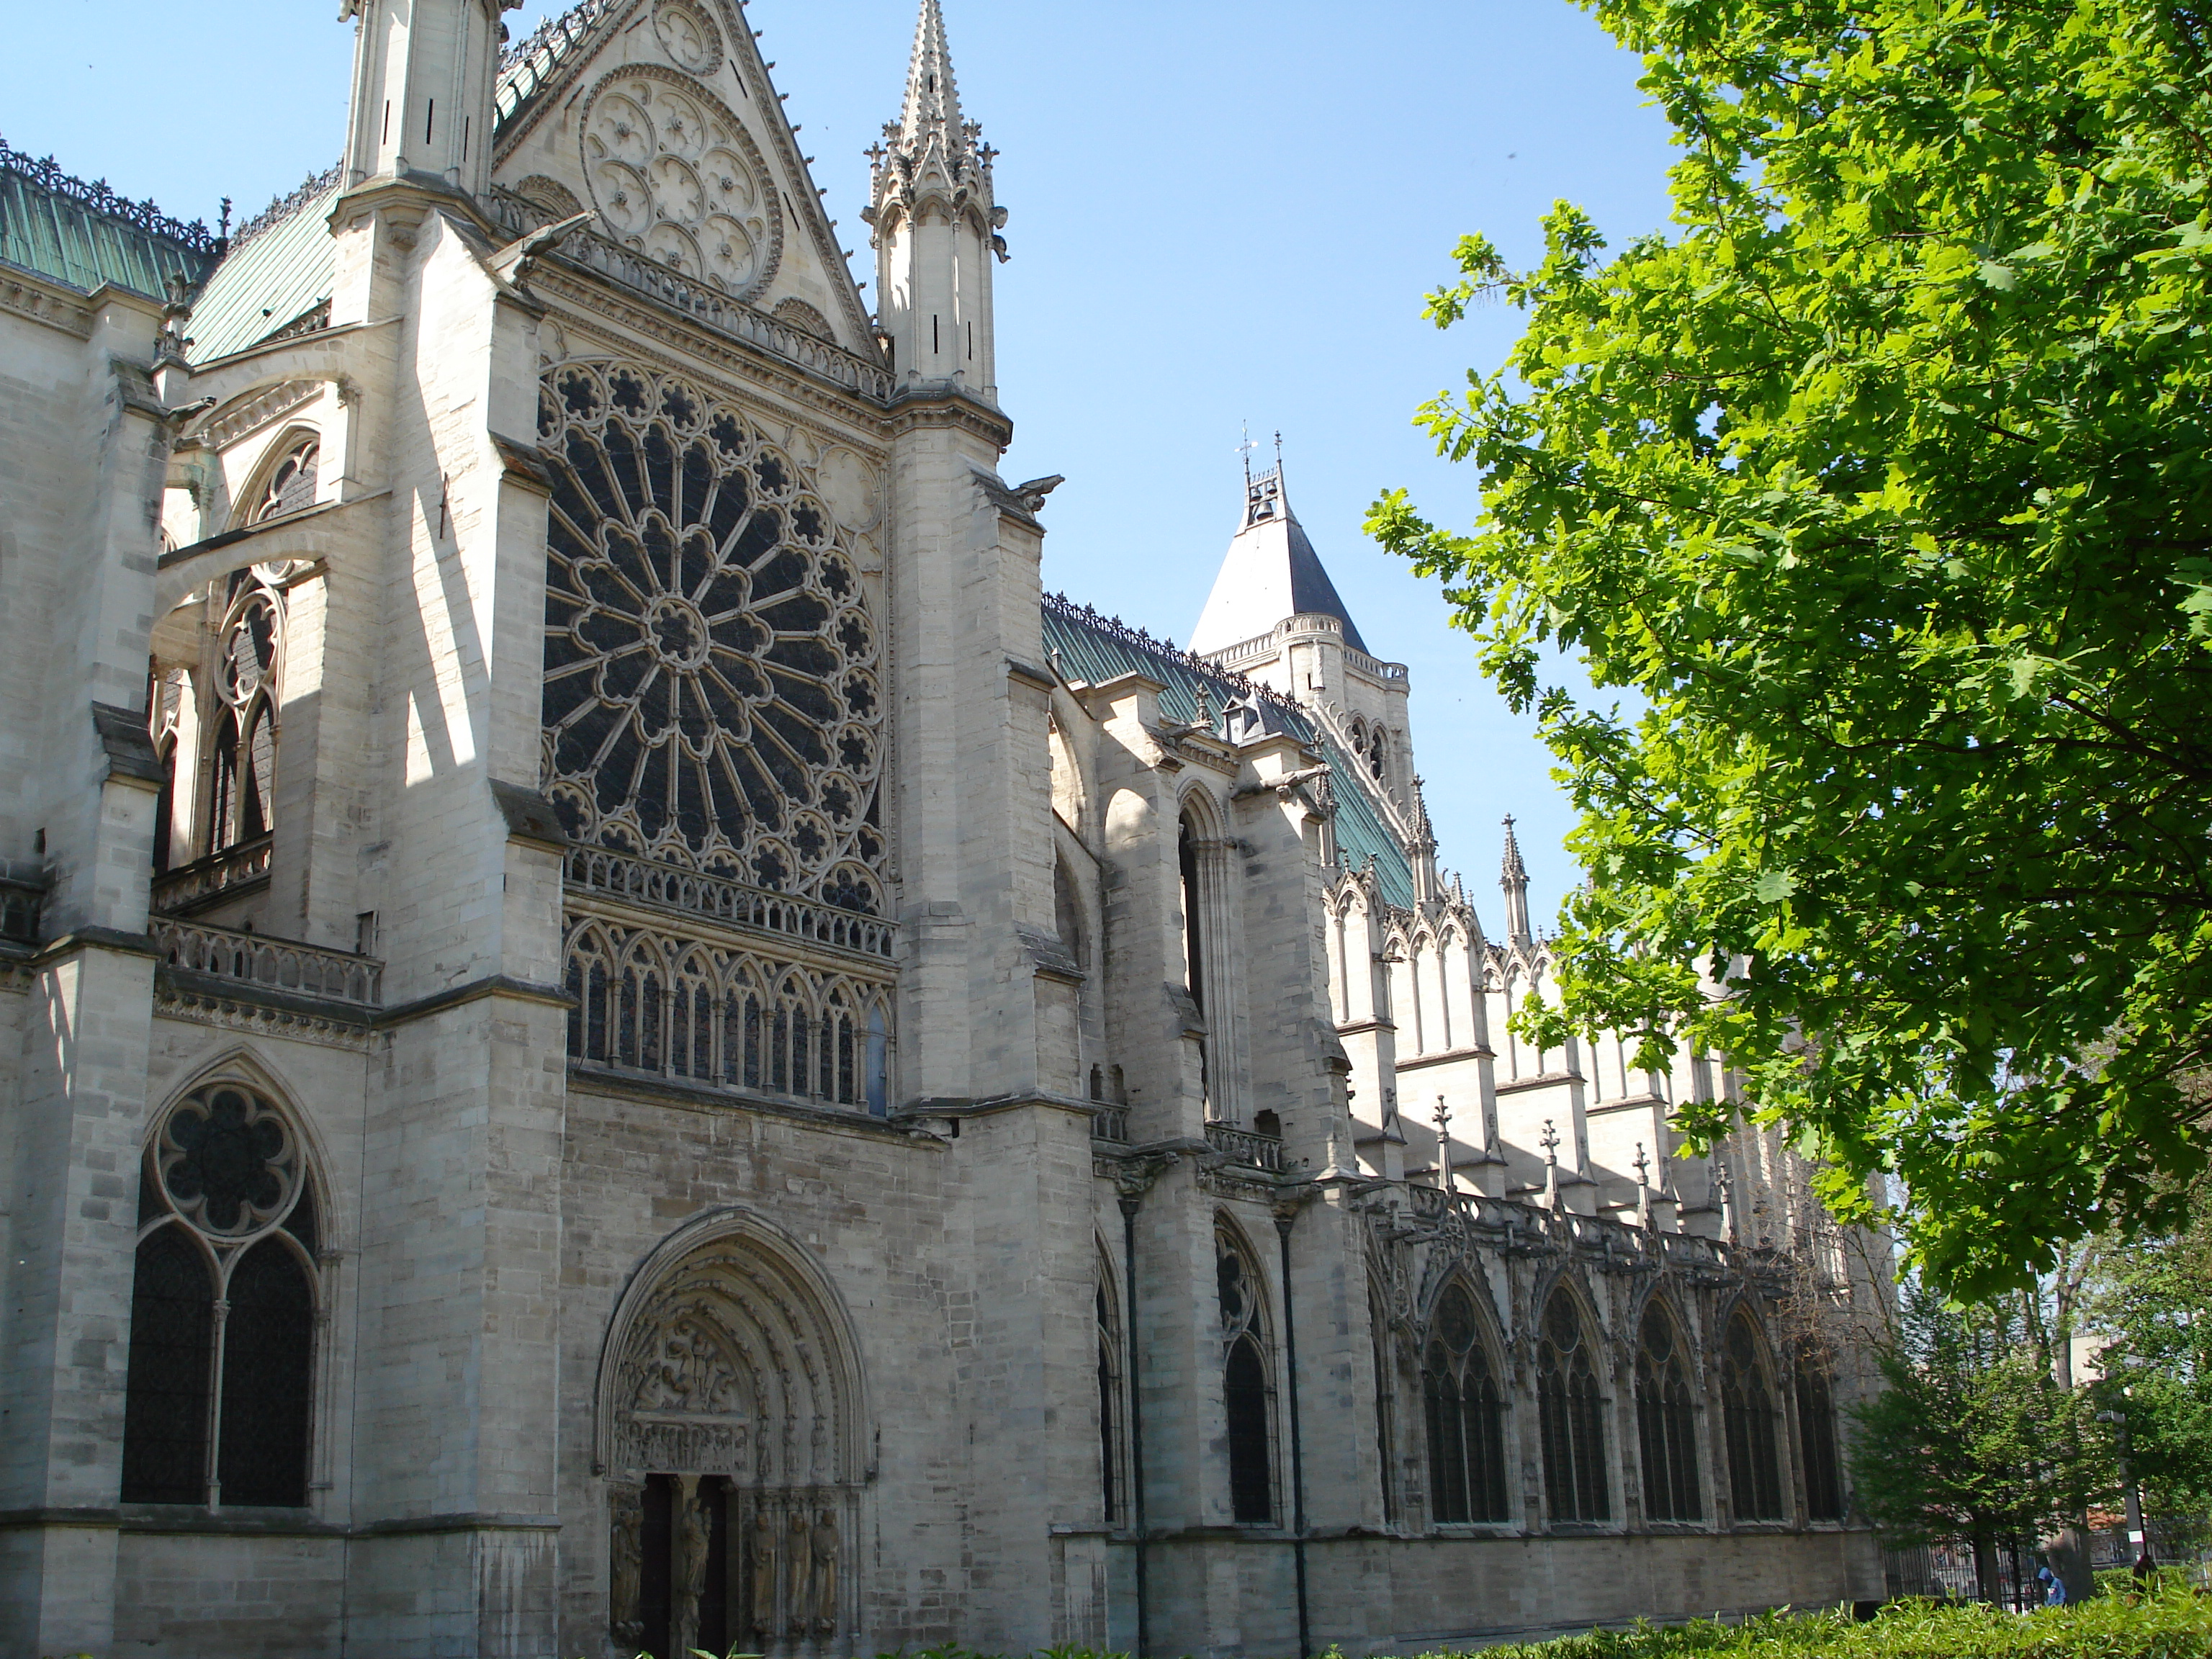 Basilique cath drale de saint denis saint denis office de tourisme de plaine commune grand paris - Office tourisme saint denis ...